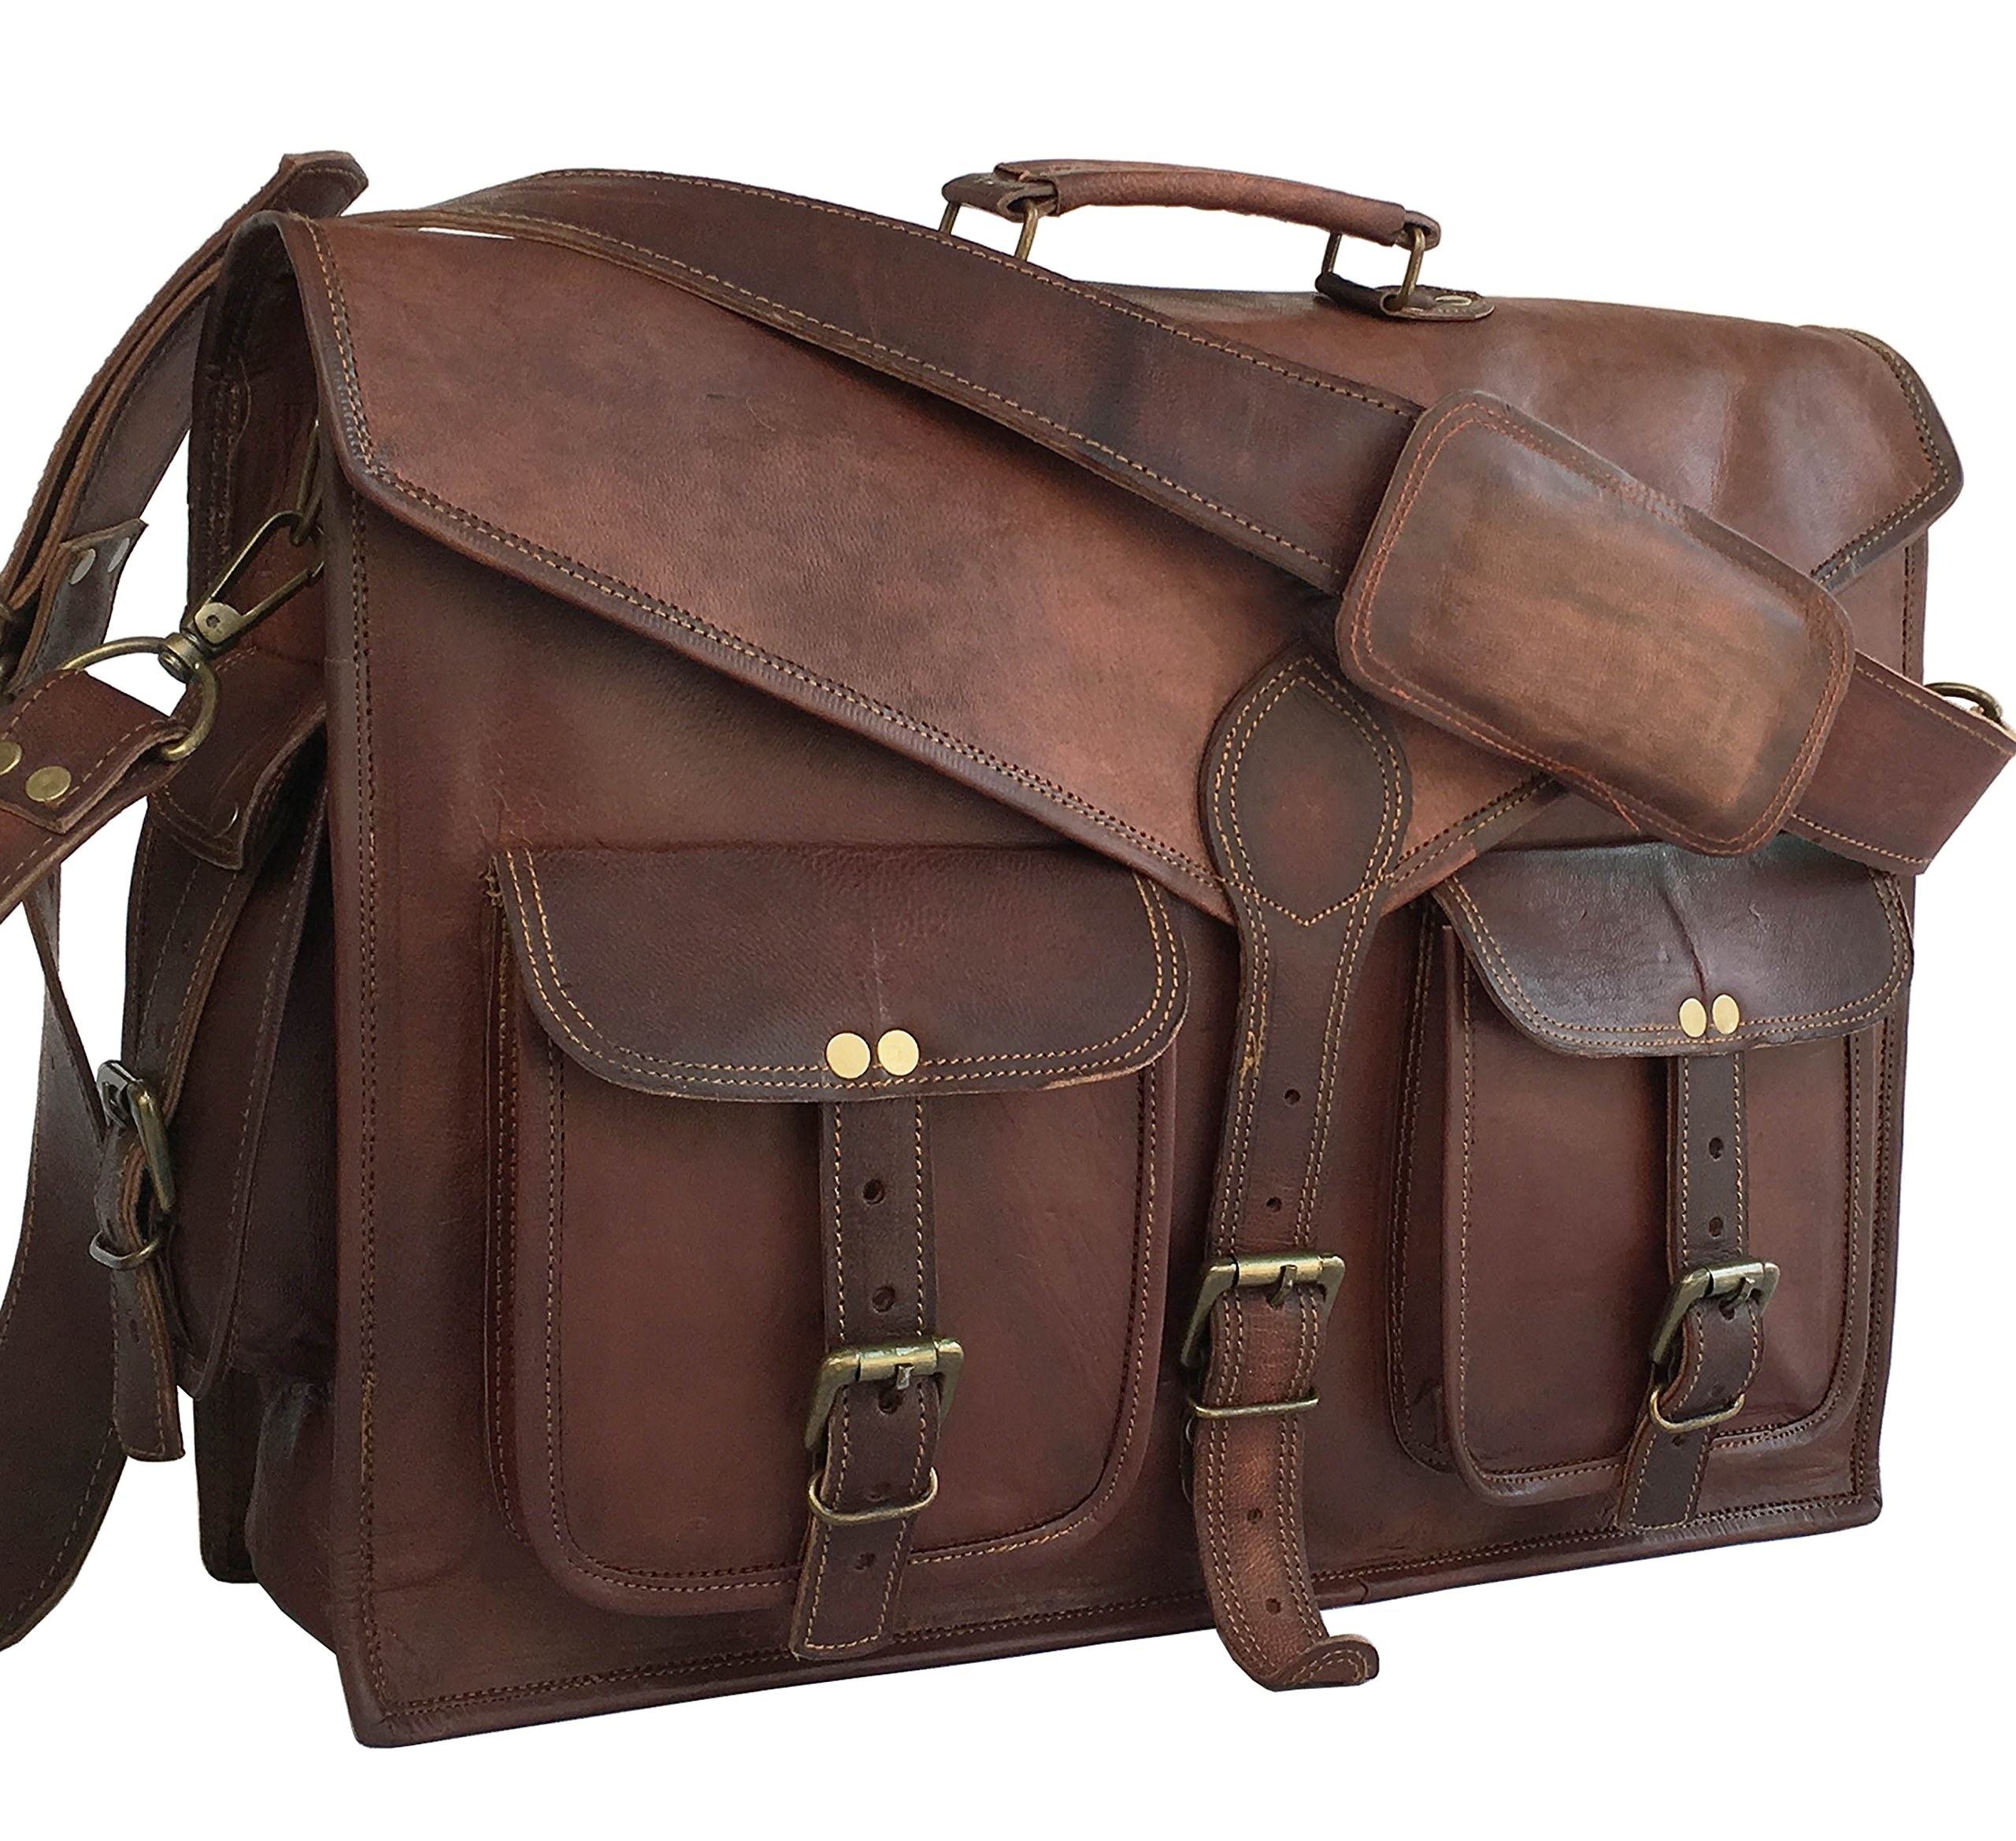 DHK 18'' ABB HANDMADE VINTAGE LEATHER MESSENGER BAG FOR LAPTOP AND OTHER ACCESSORIES BRIEFCASE SATCHEL BAG by DHK